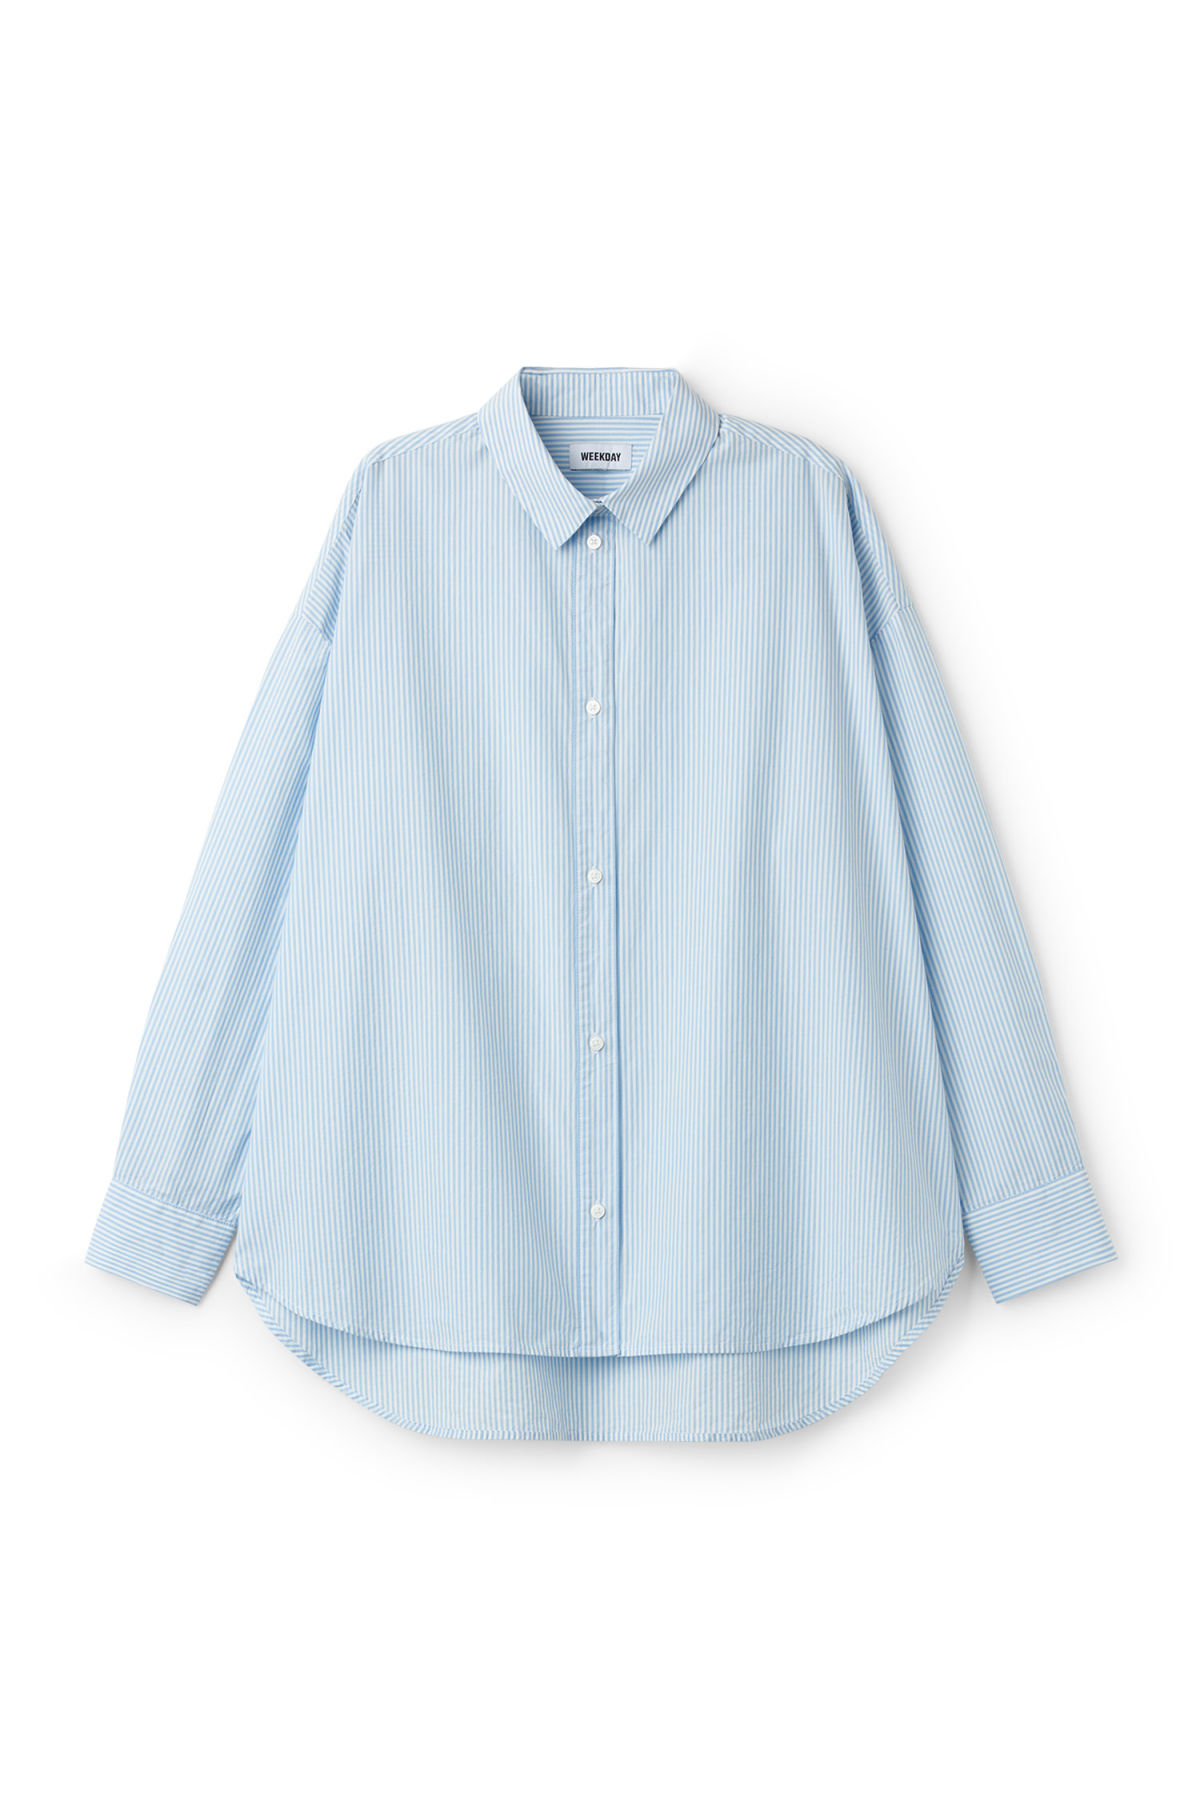 S M L XL TOPSHOP LADIES WOMENS Faded Blue Finish Pointed Collar DENIM JACKETS